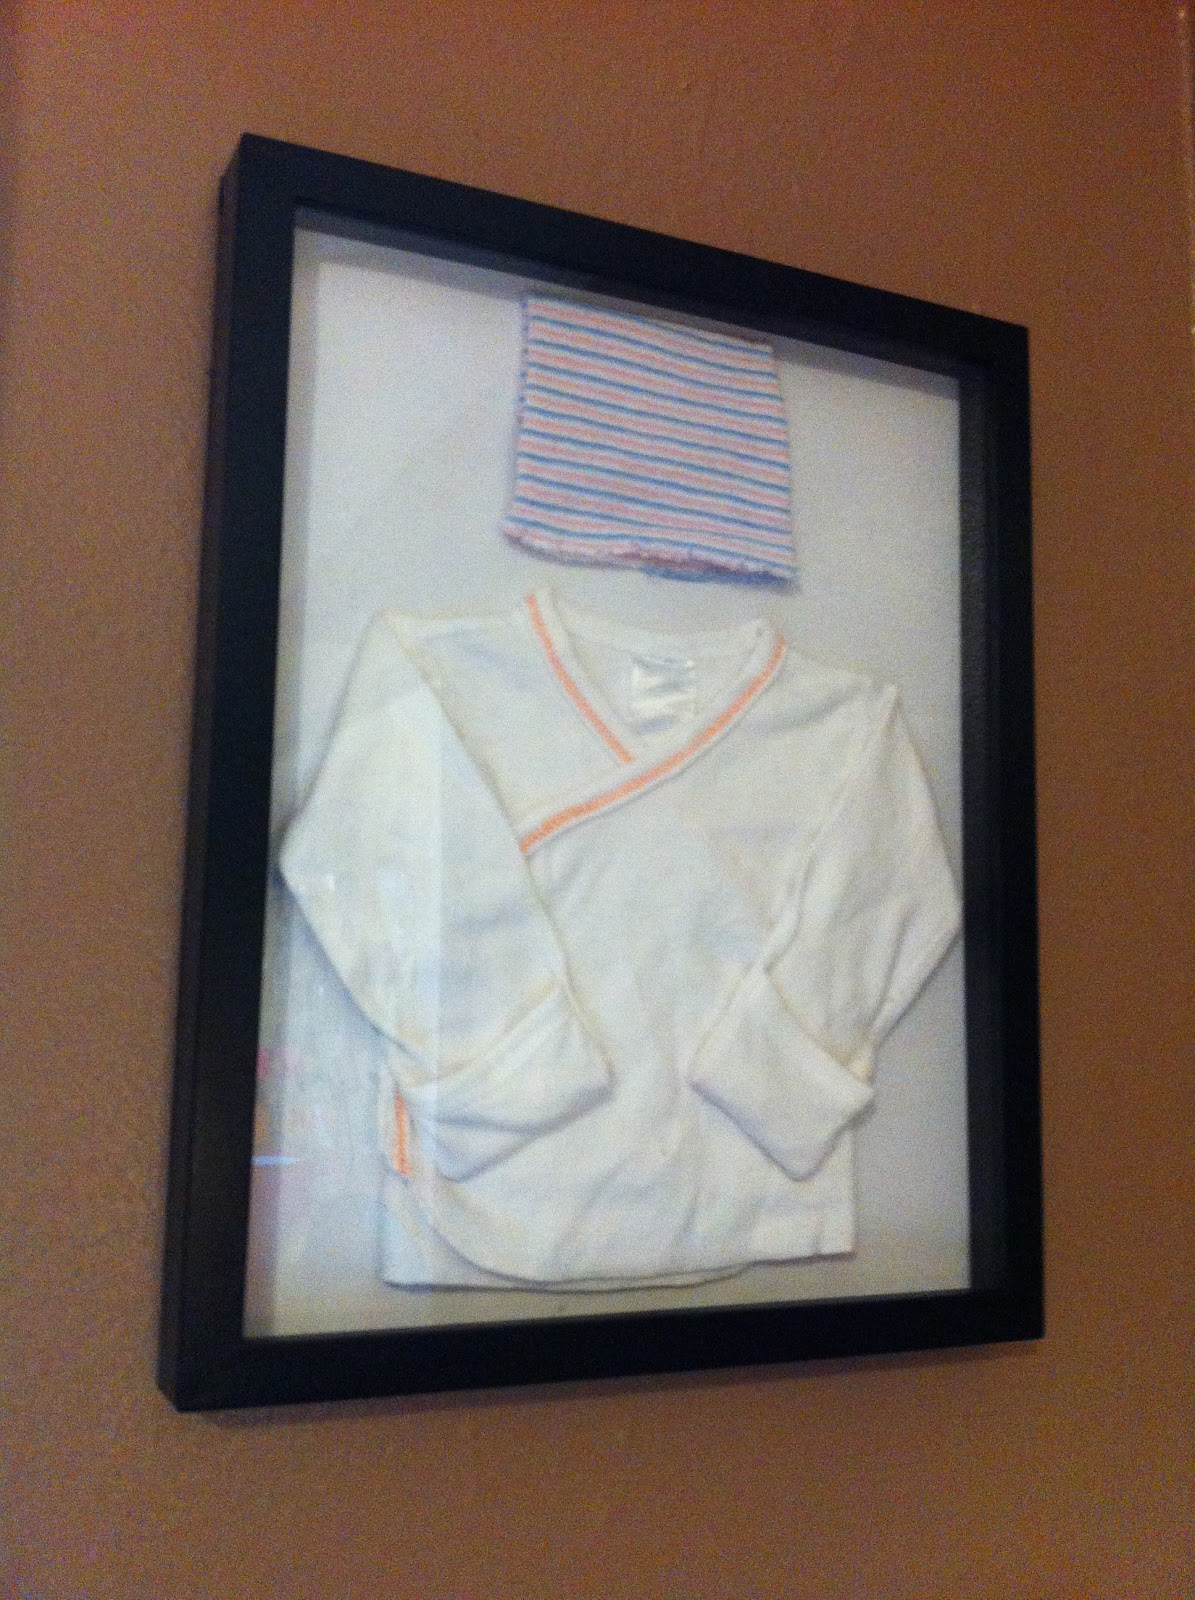 Domesticated me how to display baby clothes shadow box tutorial